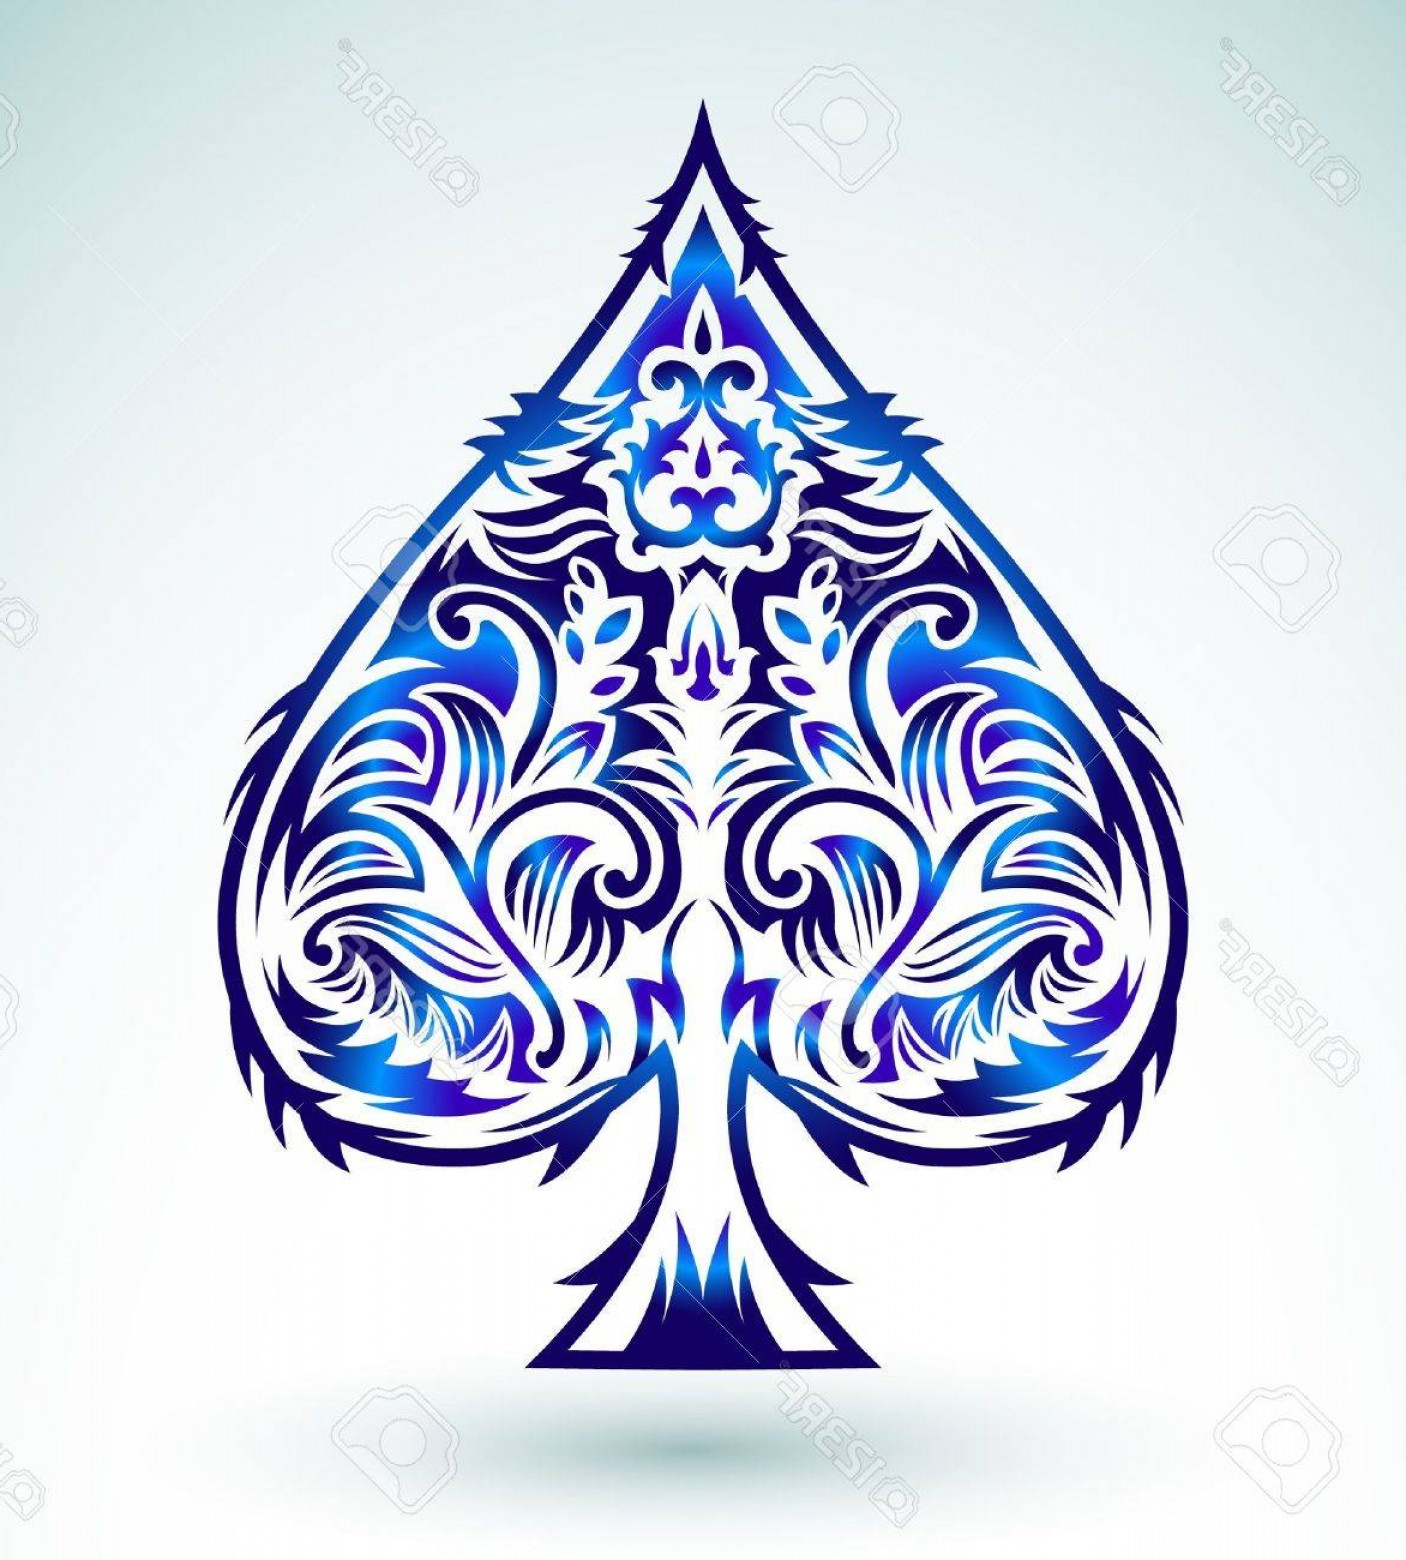 Playing Card Design Vector Illustration: Phototribal Style Design Spade Ace Poker Playing Cards Vector Illustration